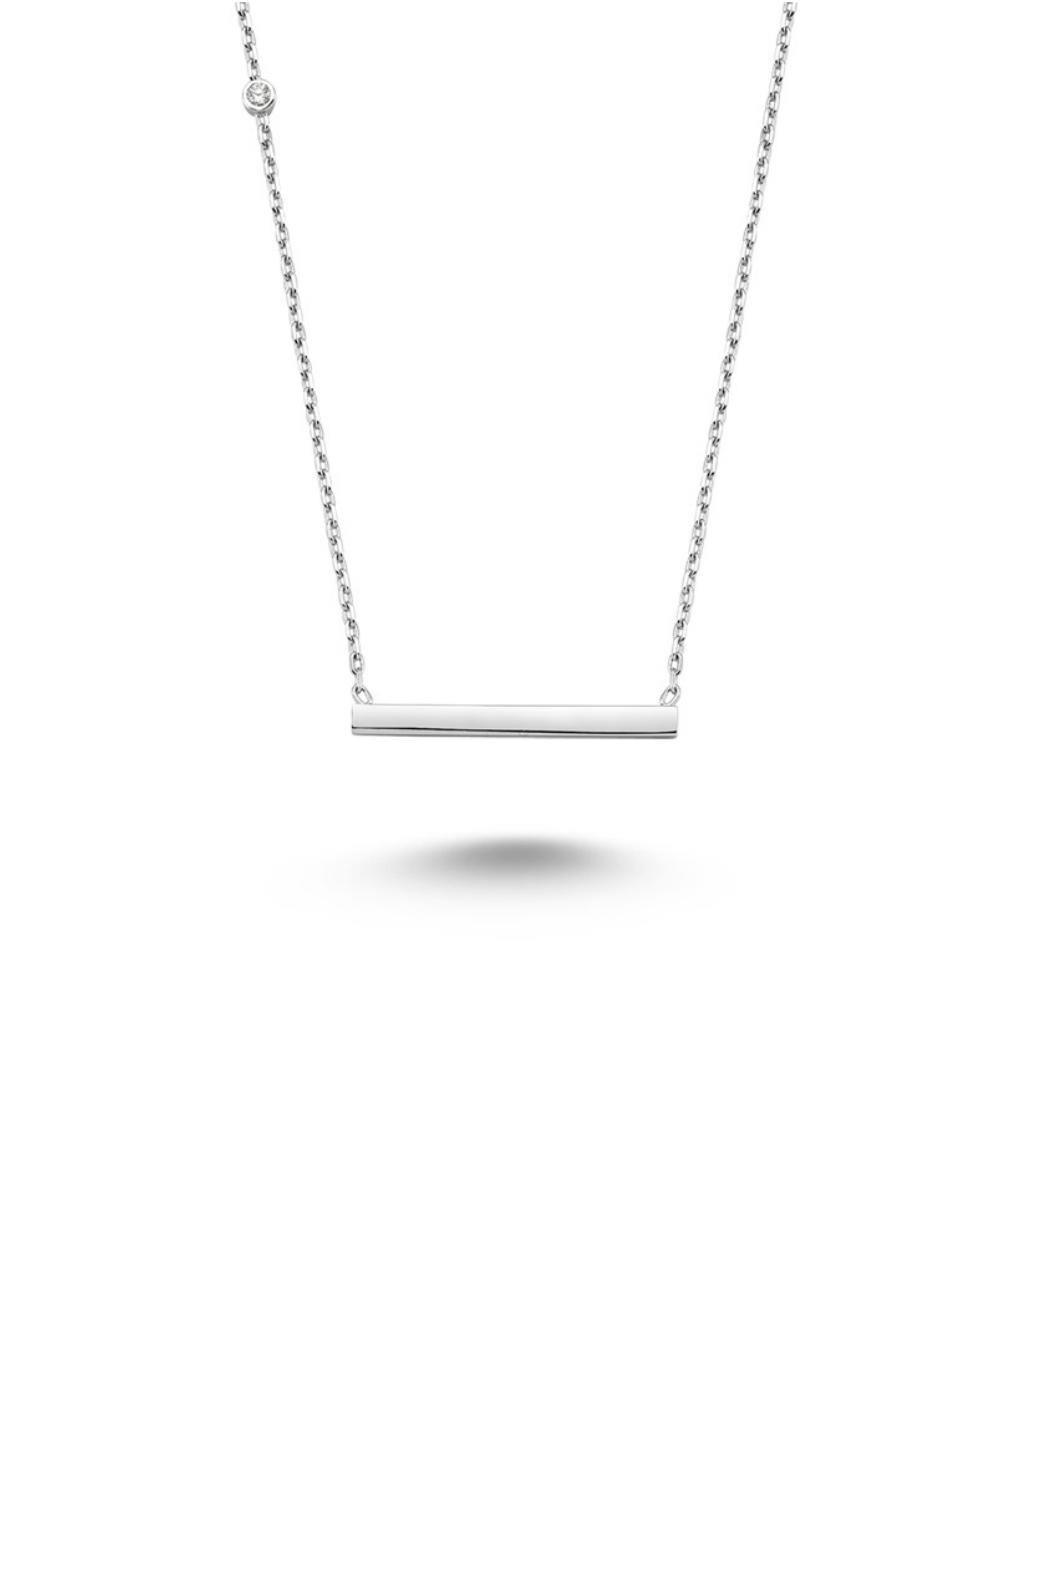 Gemma Collection Silver Bar Necklace - Main Image